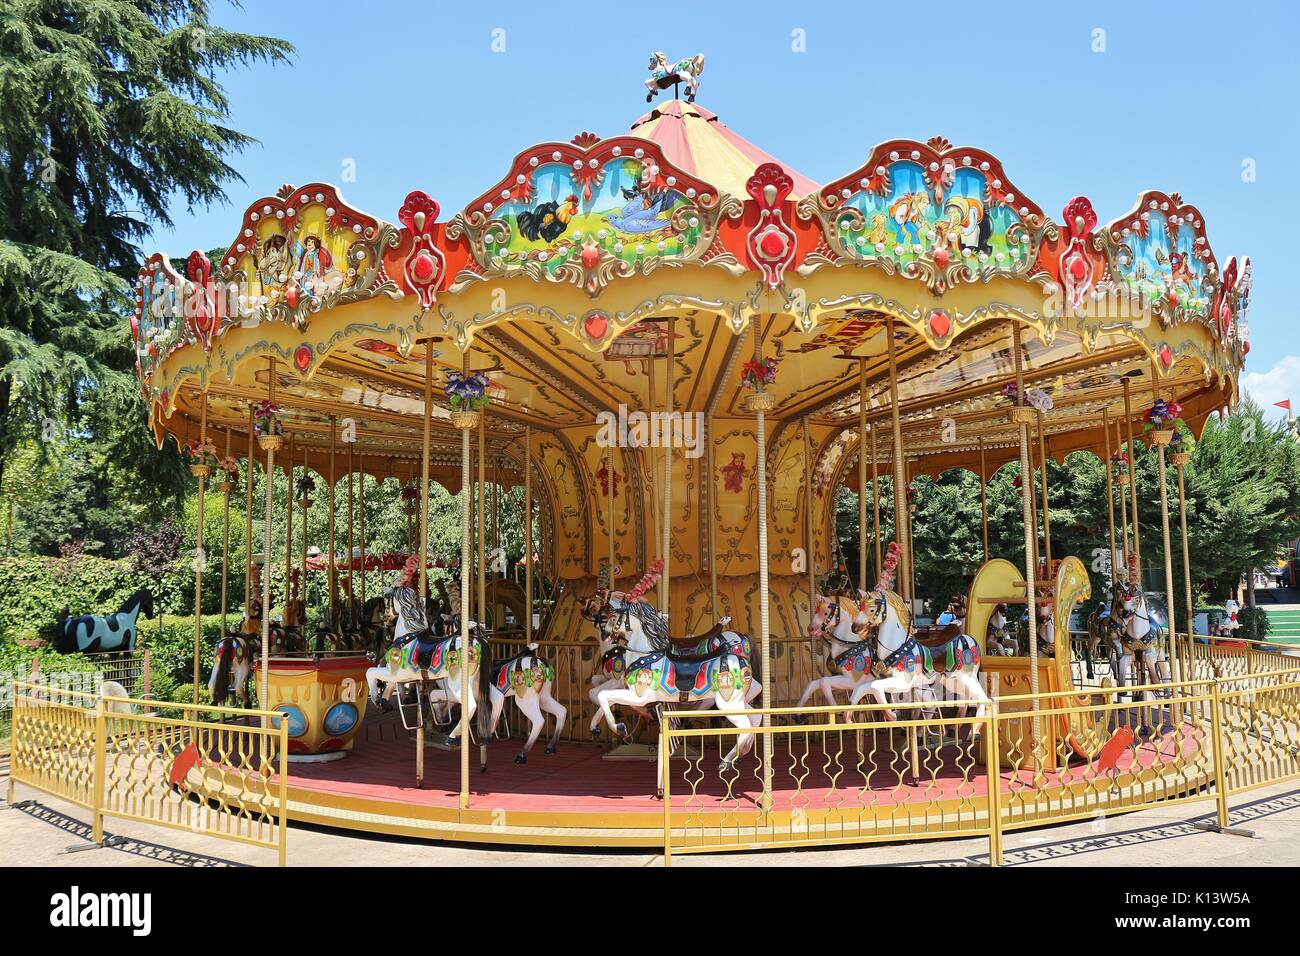 Nostalgic children's carousel in a fun park in the center of Tirana, Albania. Southeast Europe. - Stock Image